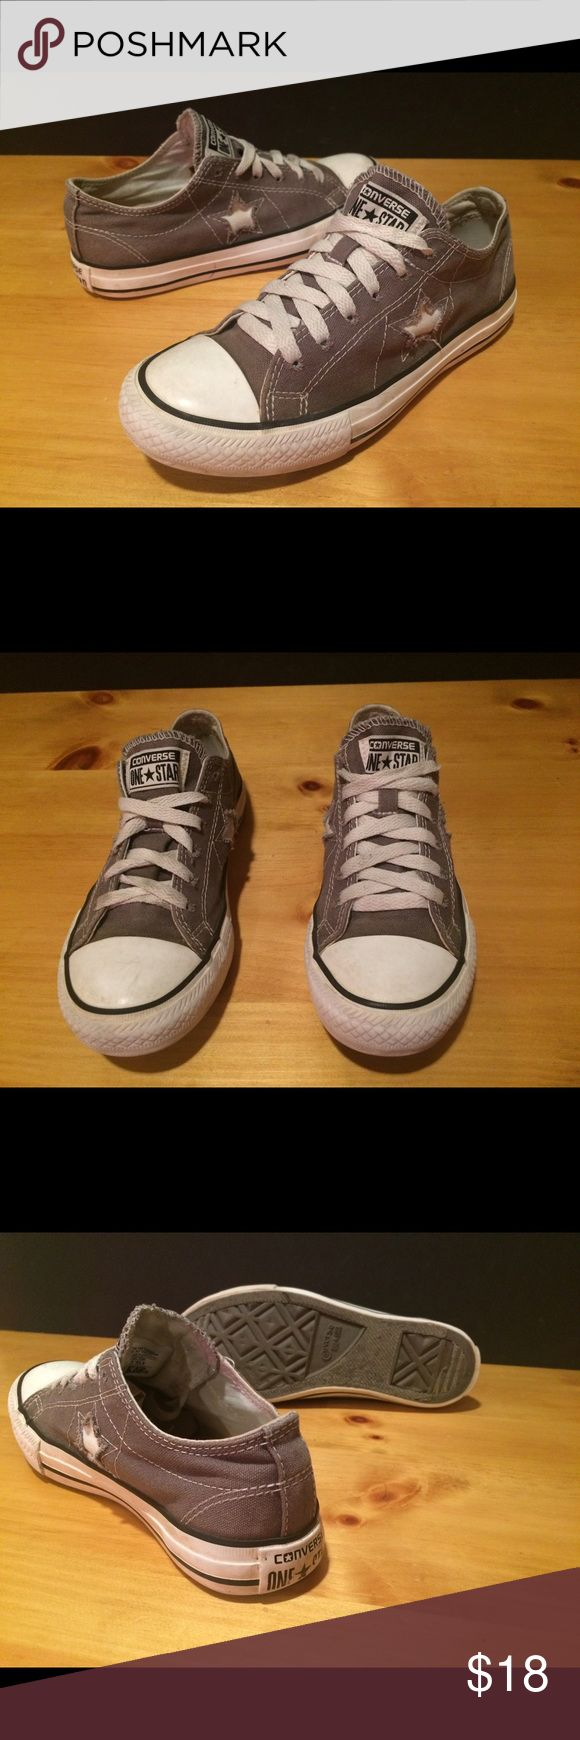 Women's Size 5.5 Converse One Star Gray Shoes Women's size 5.5 gray & white Converse One Star shoes. See photos and please message with any questions! :) Converse Shoes Sneakers